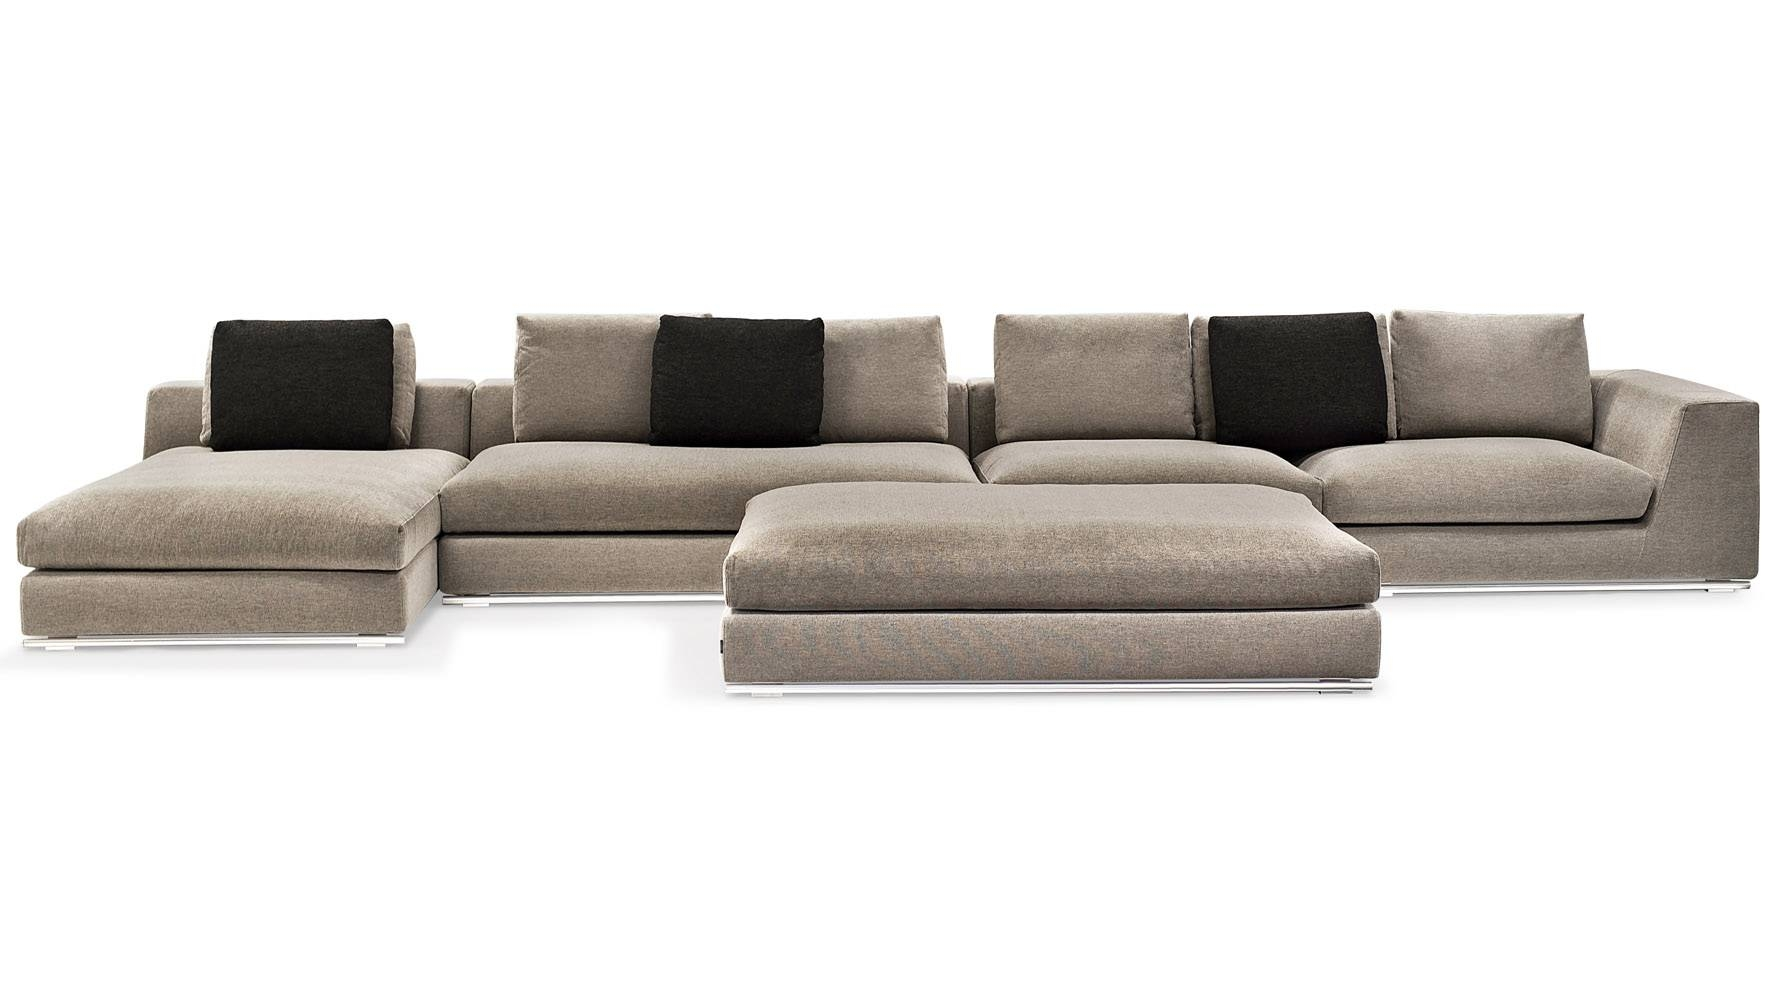 Comodo Sectional Sofa With Ottoman - Grey | Zuri Furniture with Armless Sectional Sofa (Image 9 of 30)